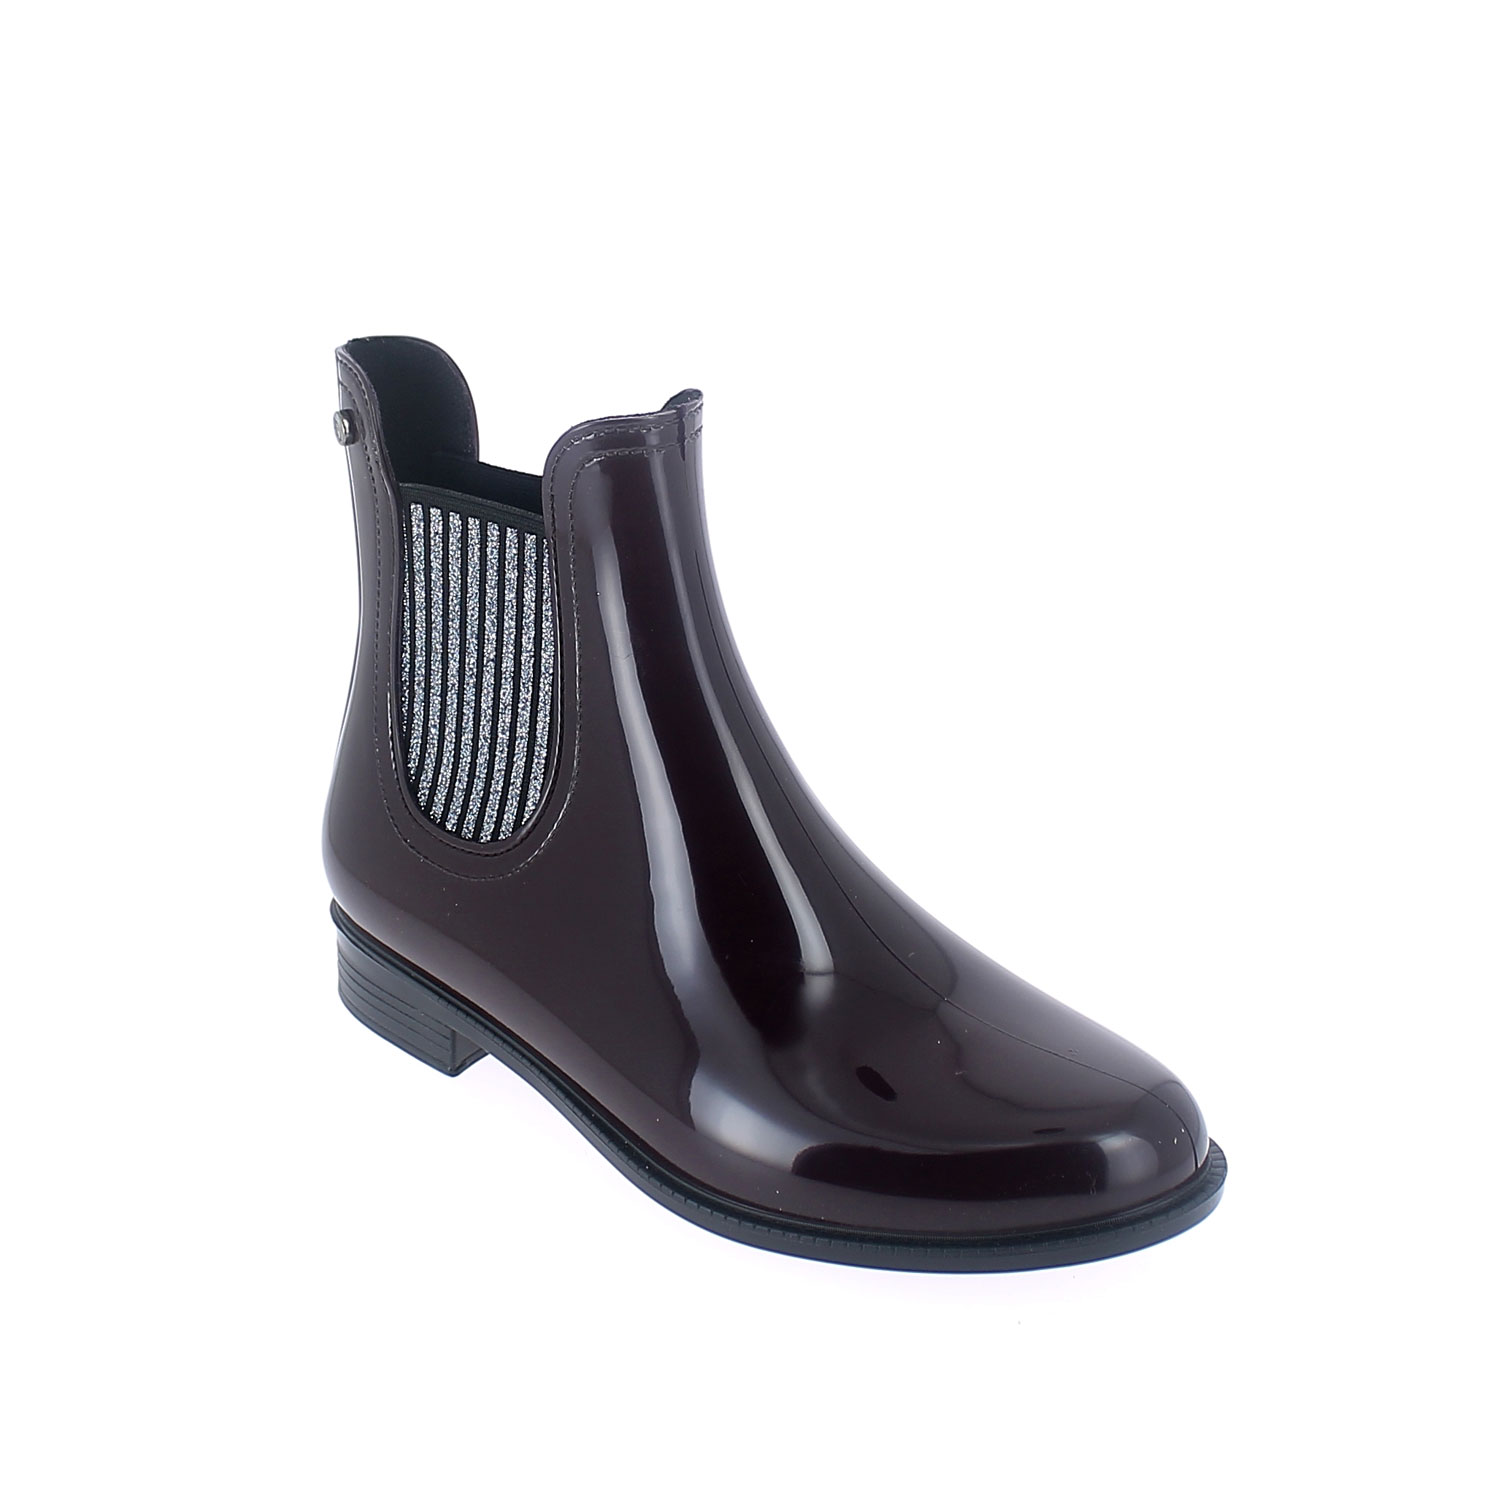 Chelsea boot in Sanguinaccio pvc with glittered elastics